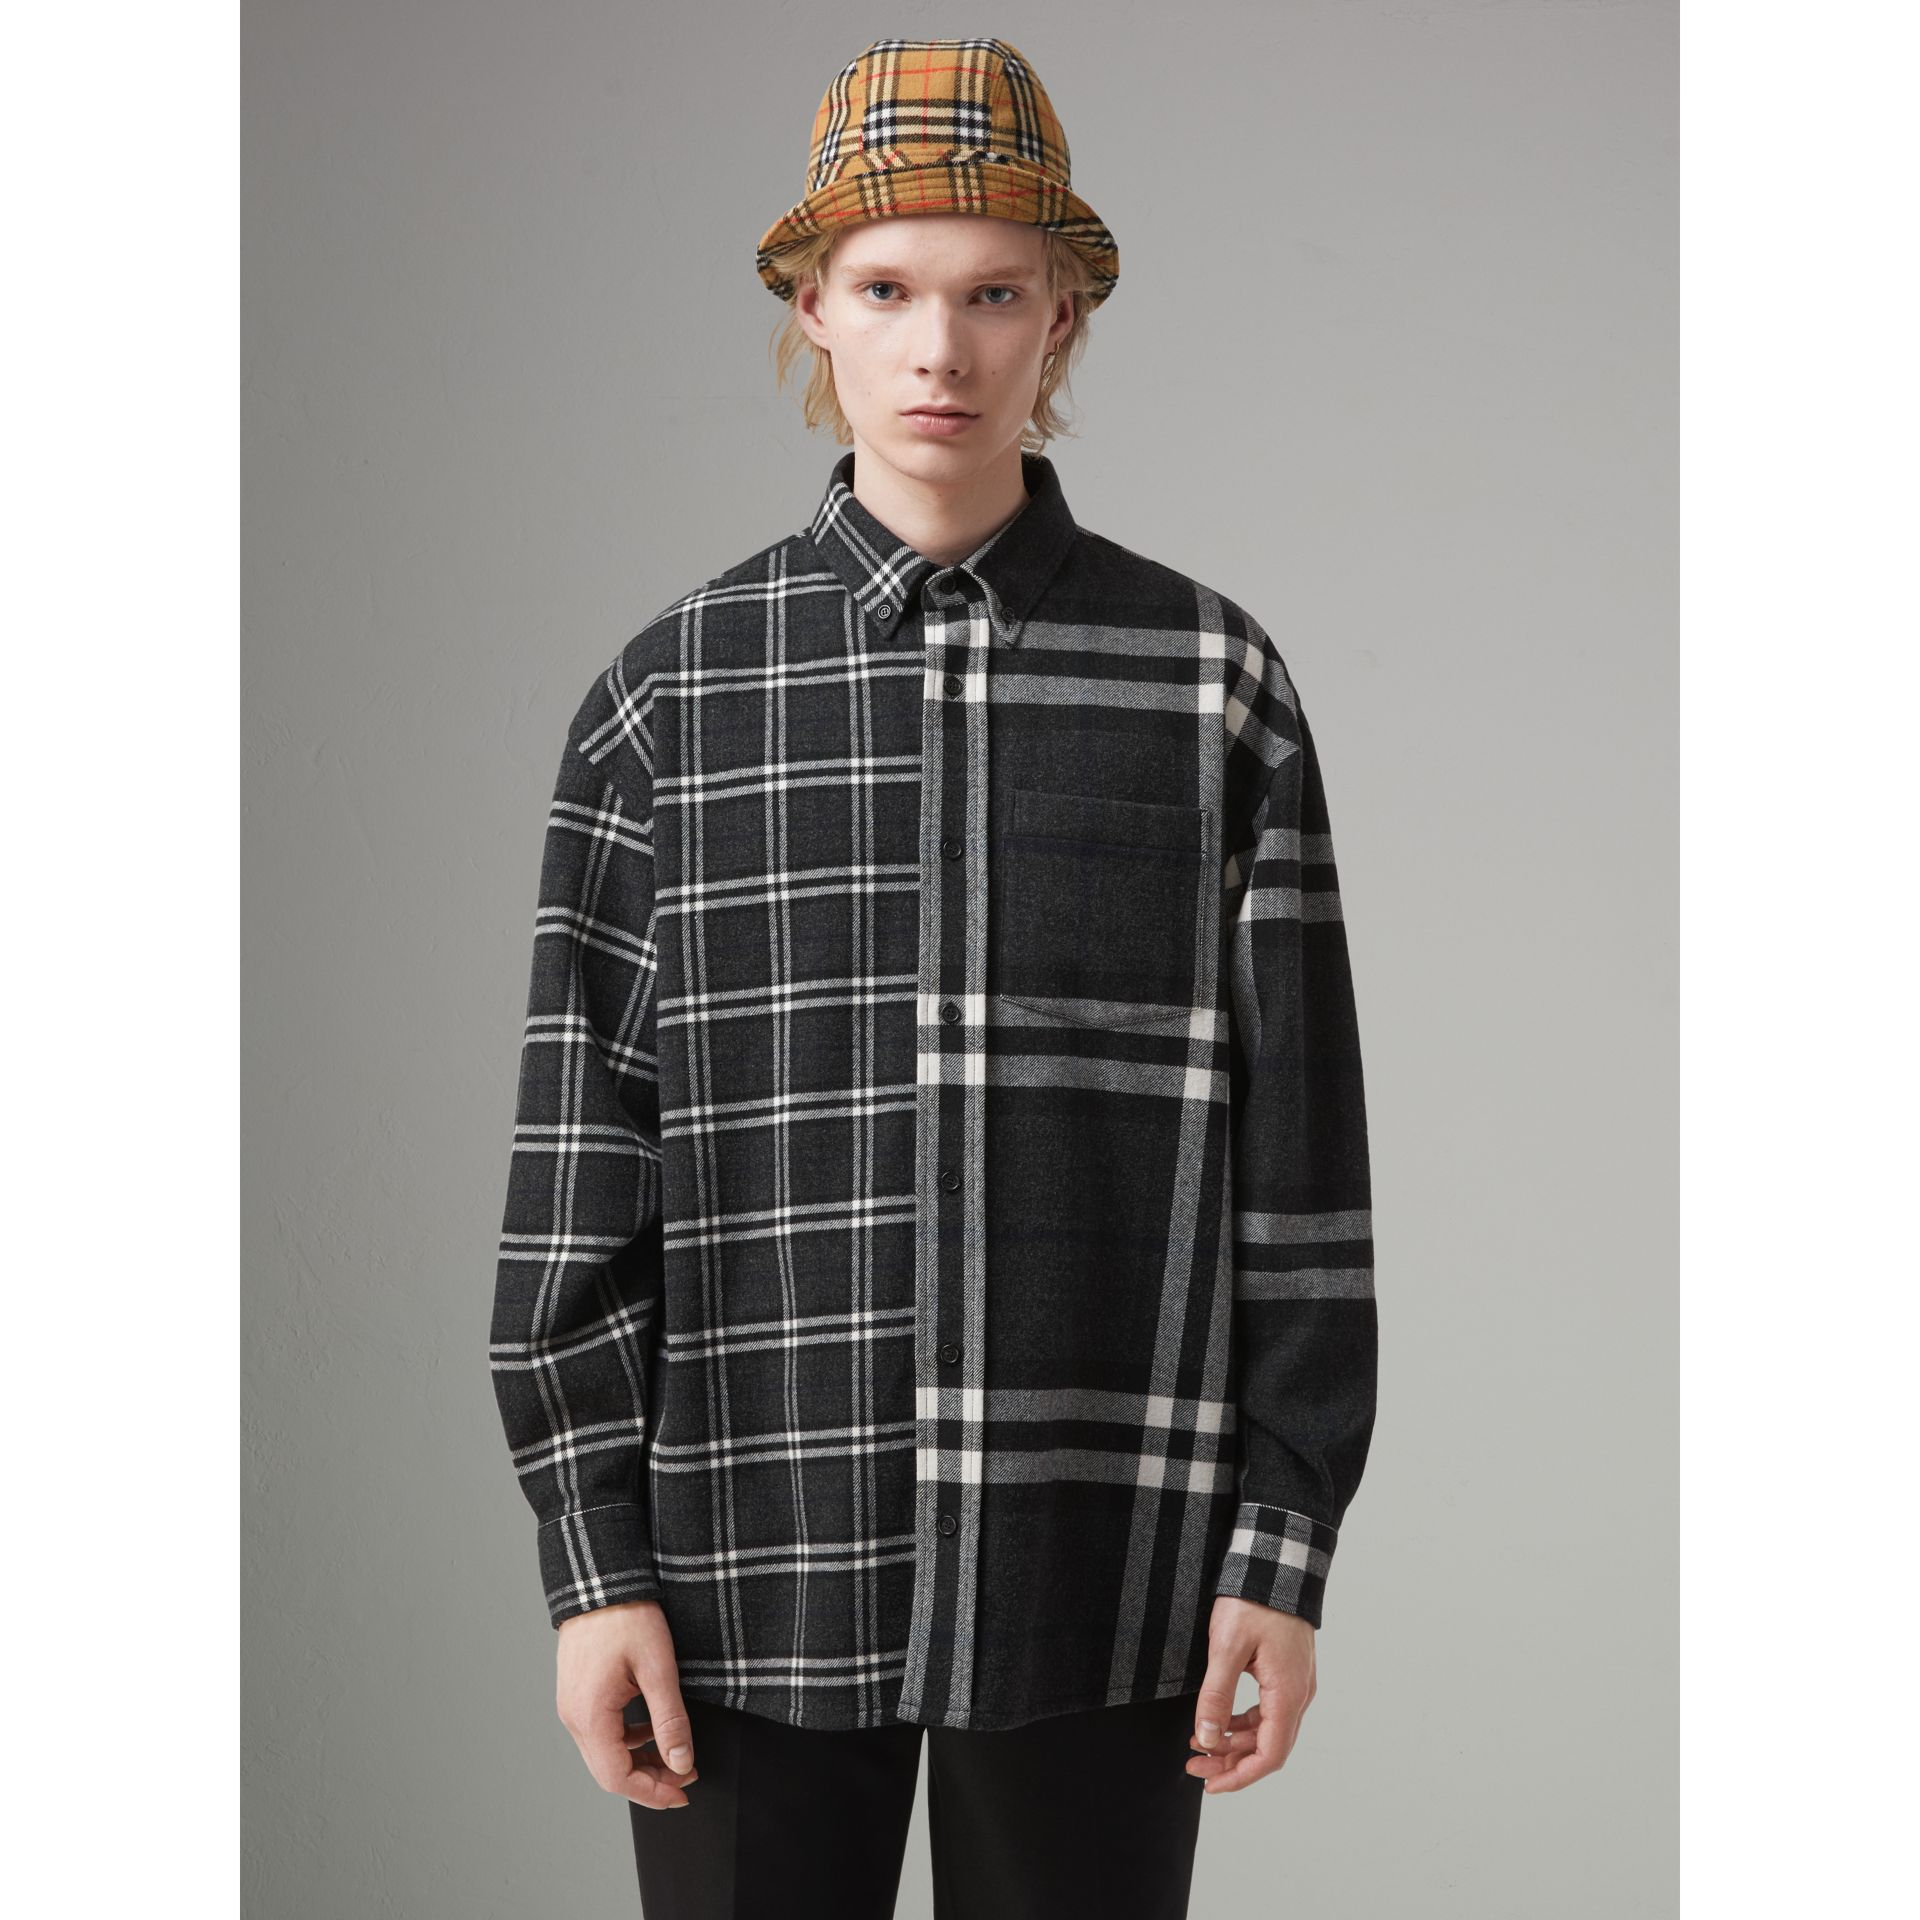 Gosha x Burberry Check Flannel Shirt in Charcoal | Burberry United States - gallery image 5